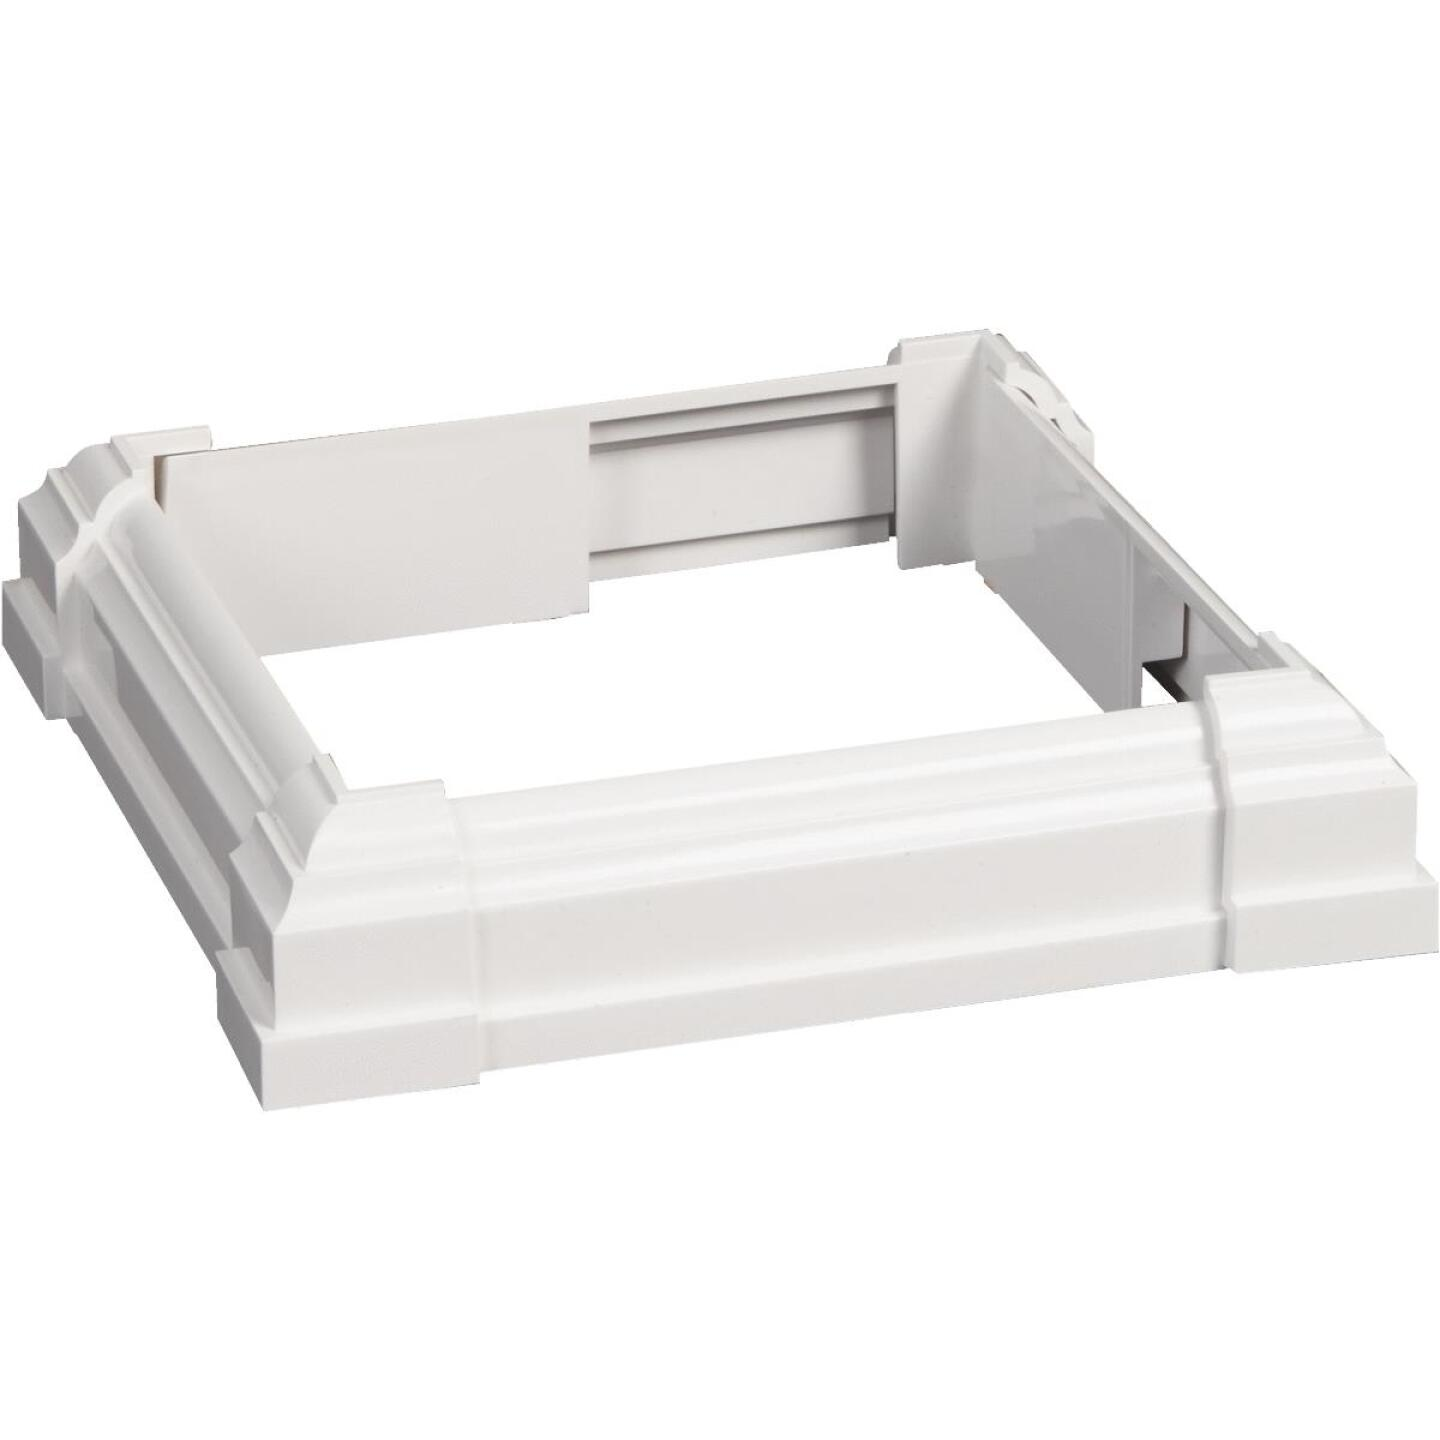 Beechdale 6 In. W. x 6 In. L. PVC White Post Trim Collar Image 1